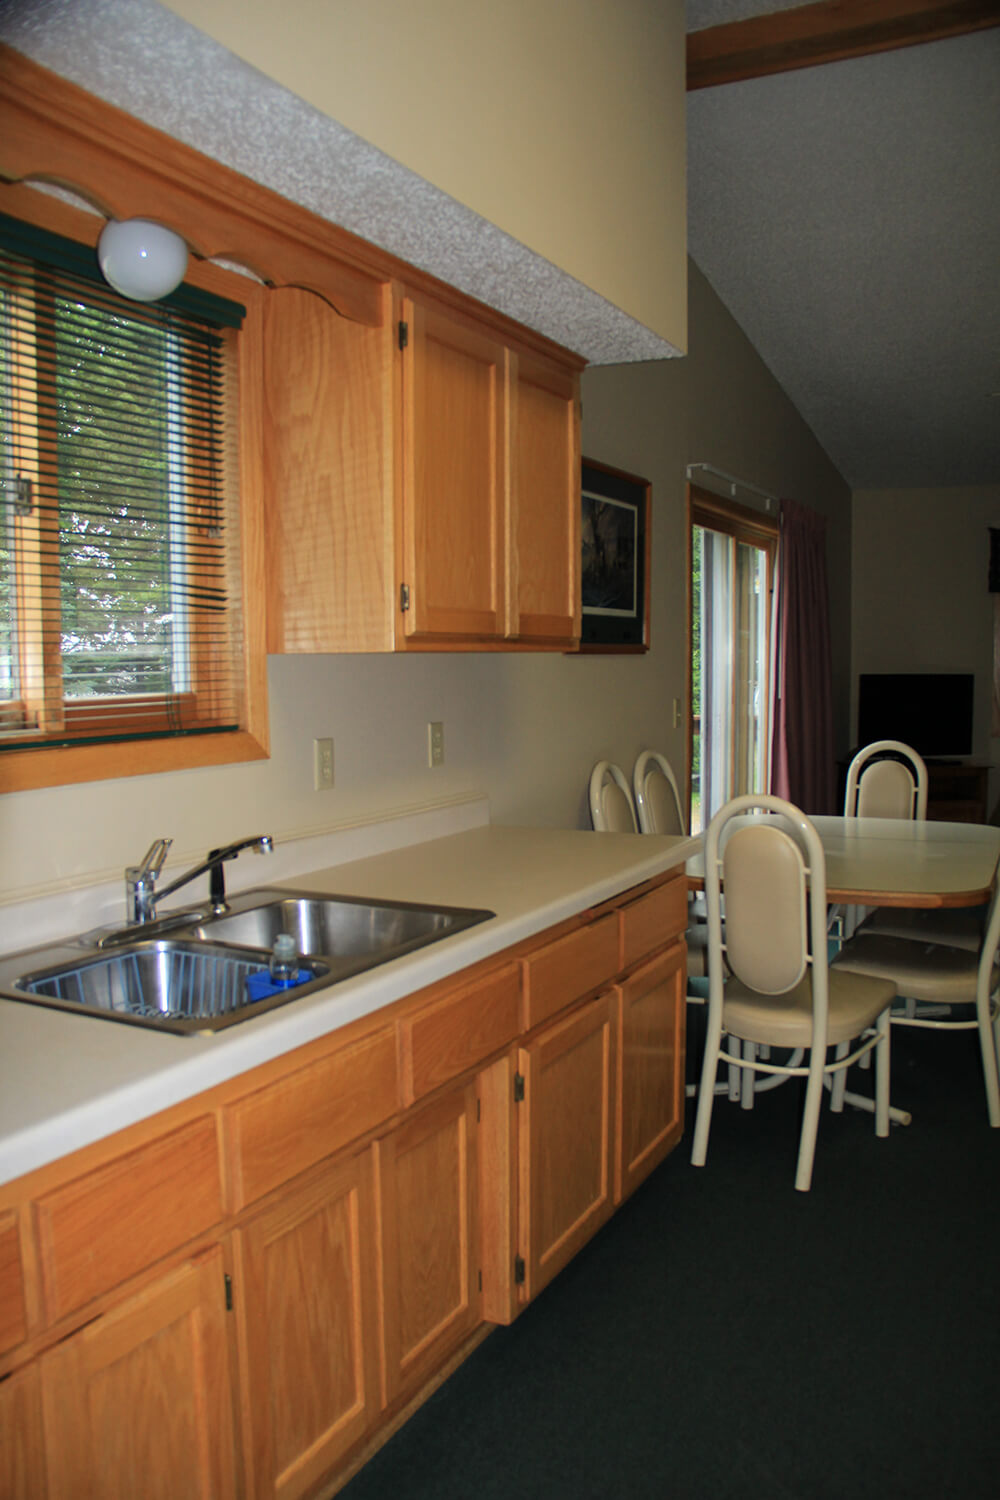 Cabin 4 Sink Area on Mille Lacs Lake